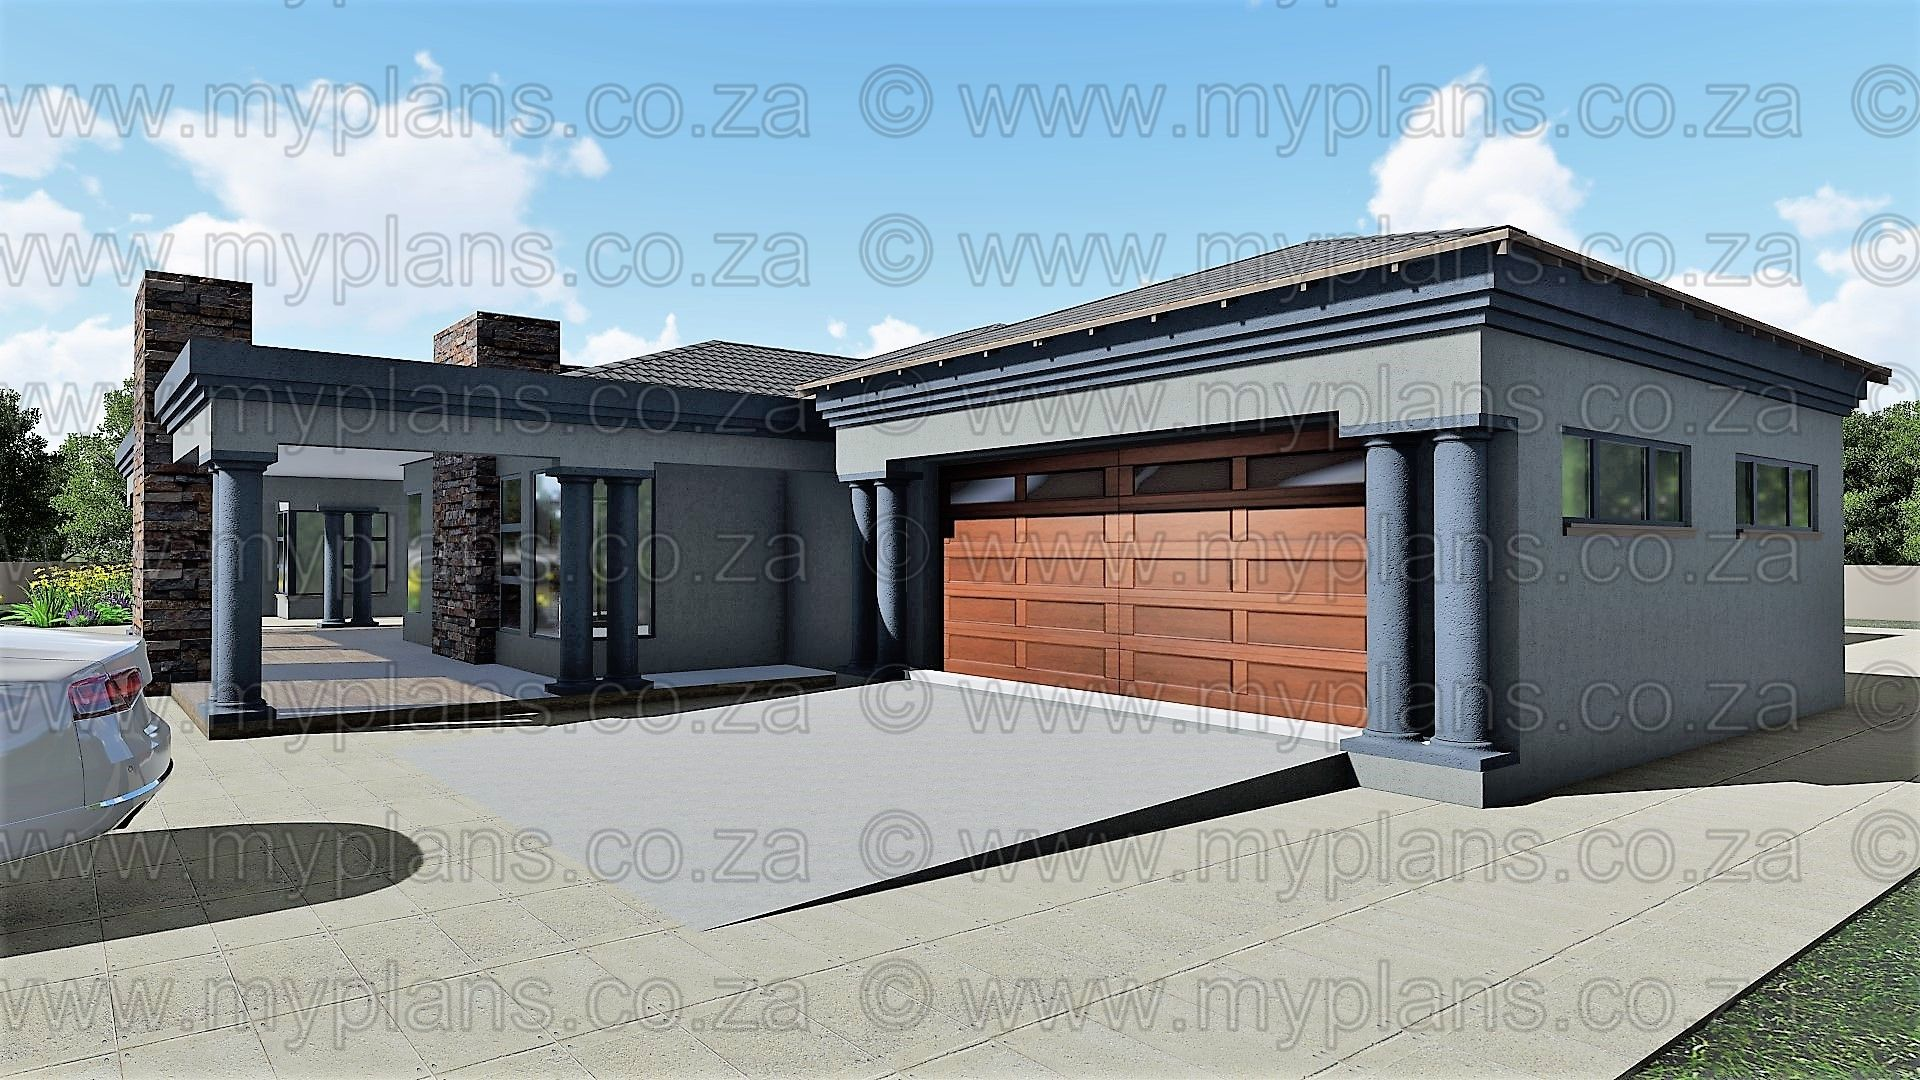 4 Bedroom House Plan Mlb 058 1s House Plans South Africa Tuscan House Plans House Plan Gallery